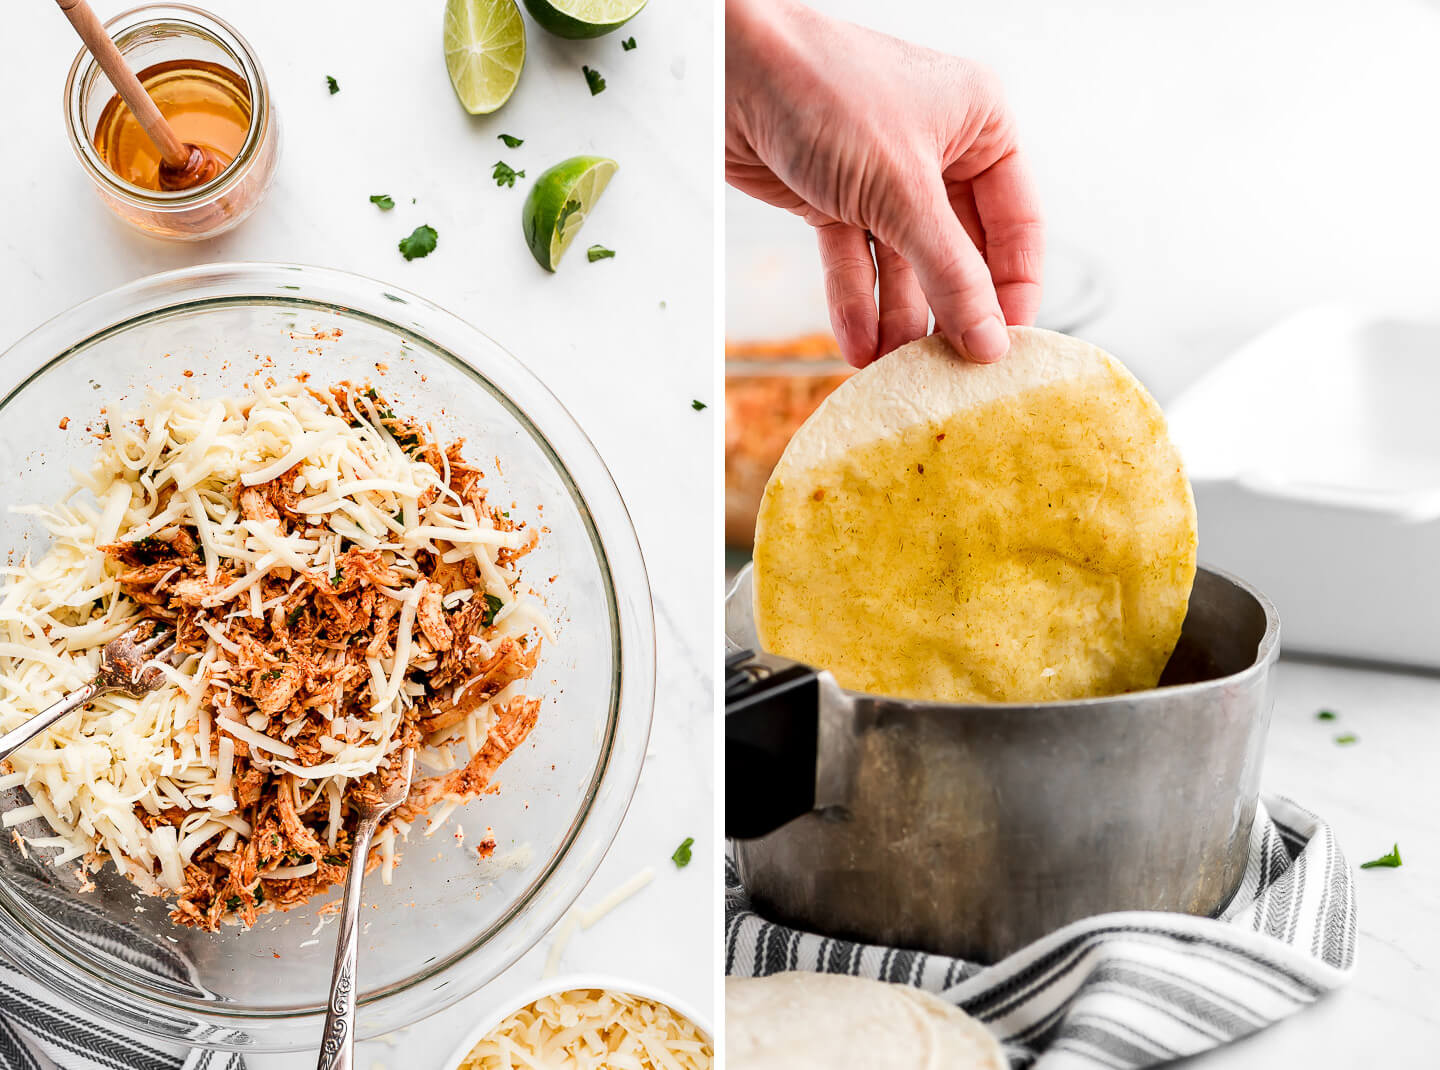 Diptych- Mixing together a chicken and cheese filling; dipping corn tortilla in a pot of warm enchilada sauce.